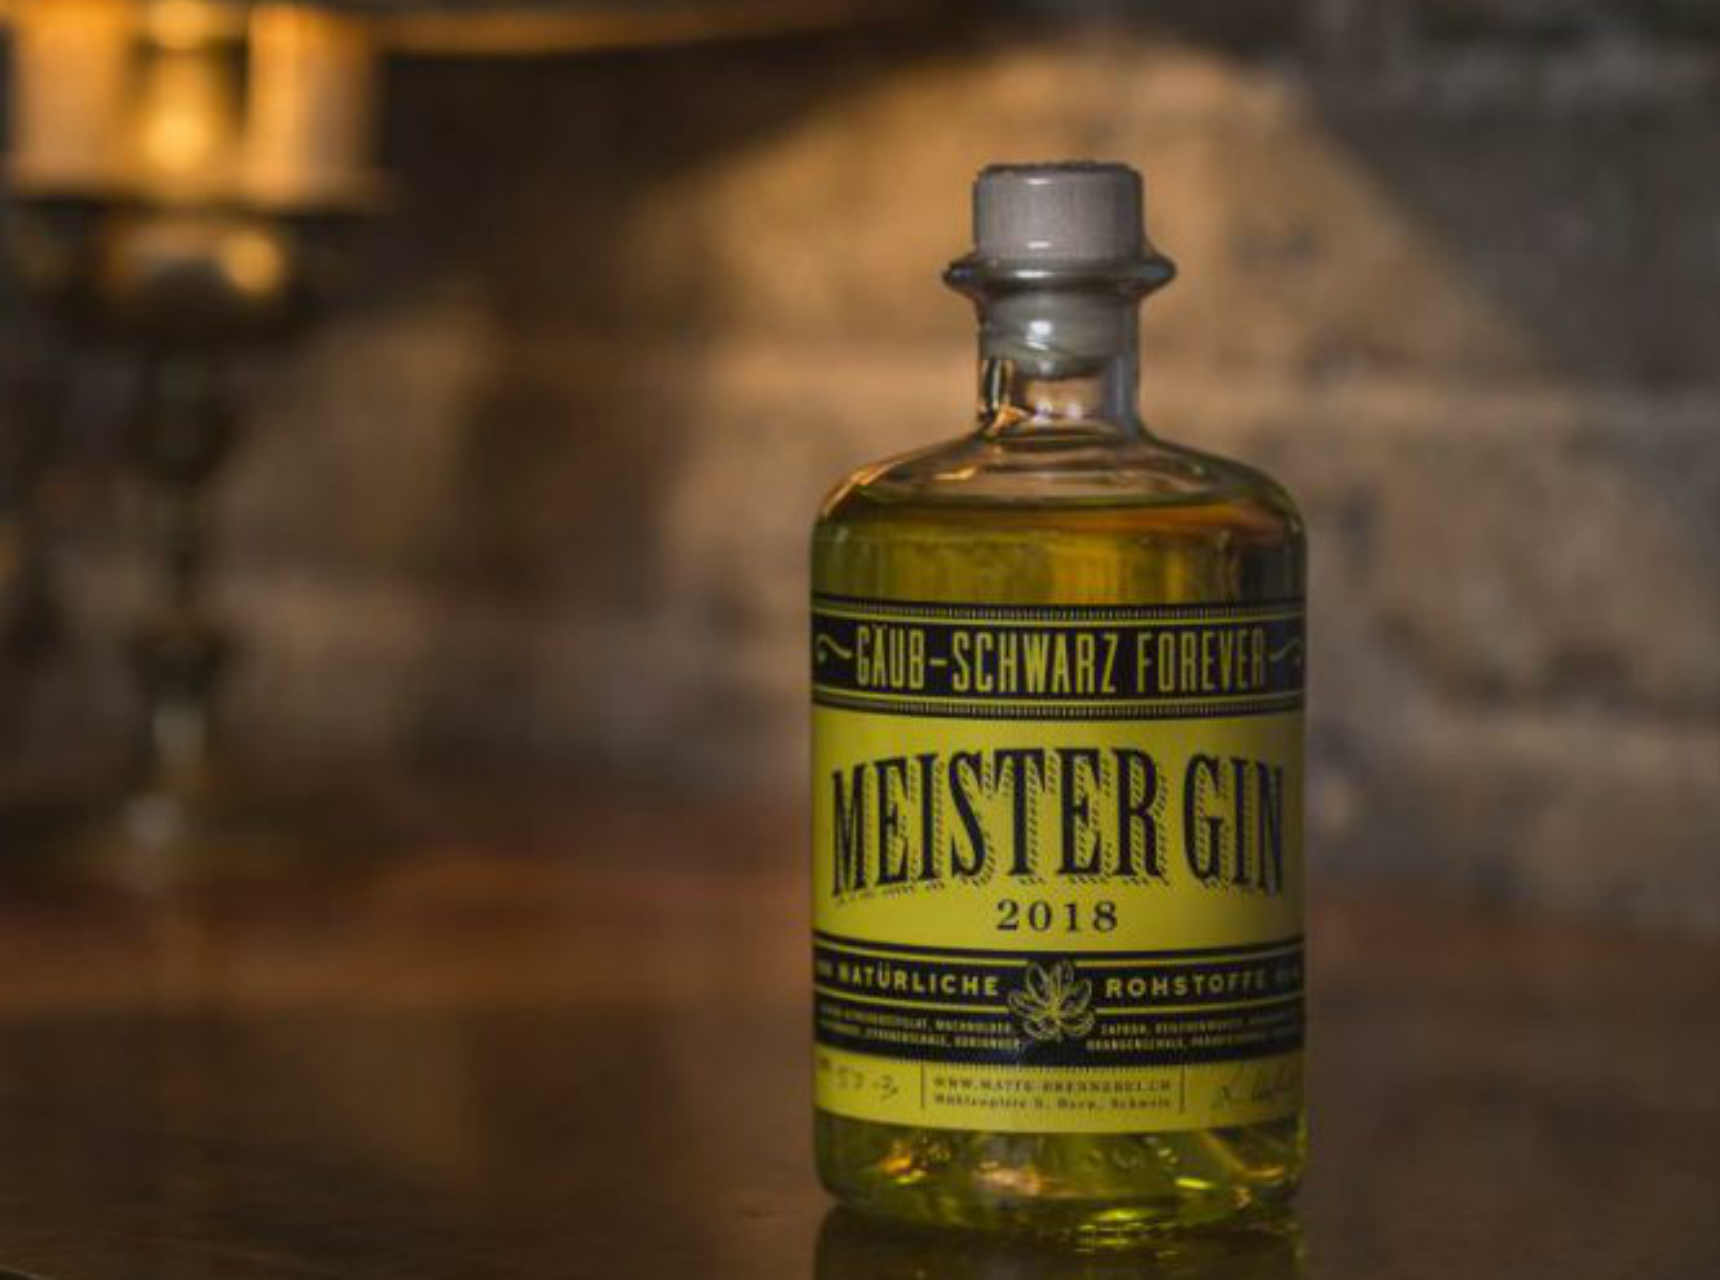 Meister-Gin-2018